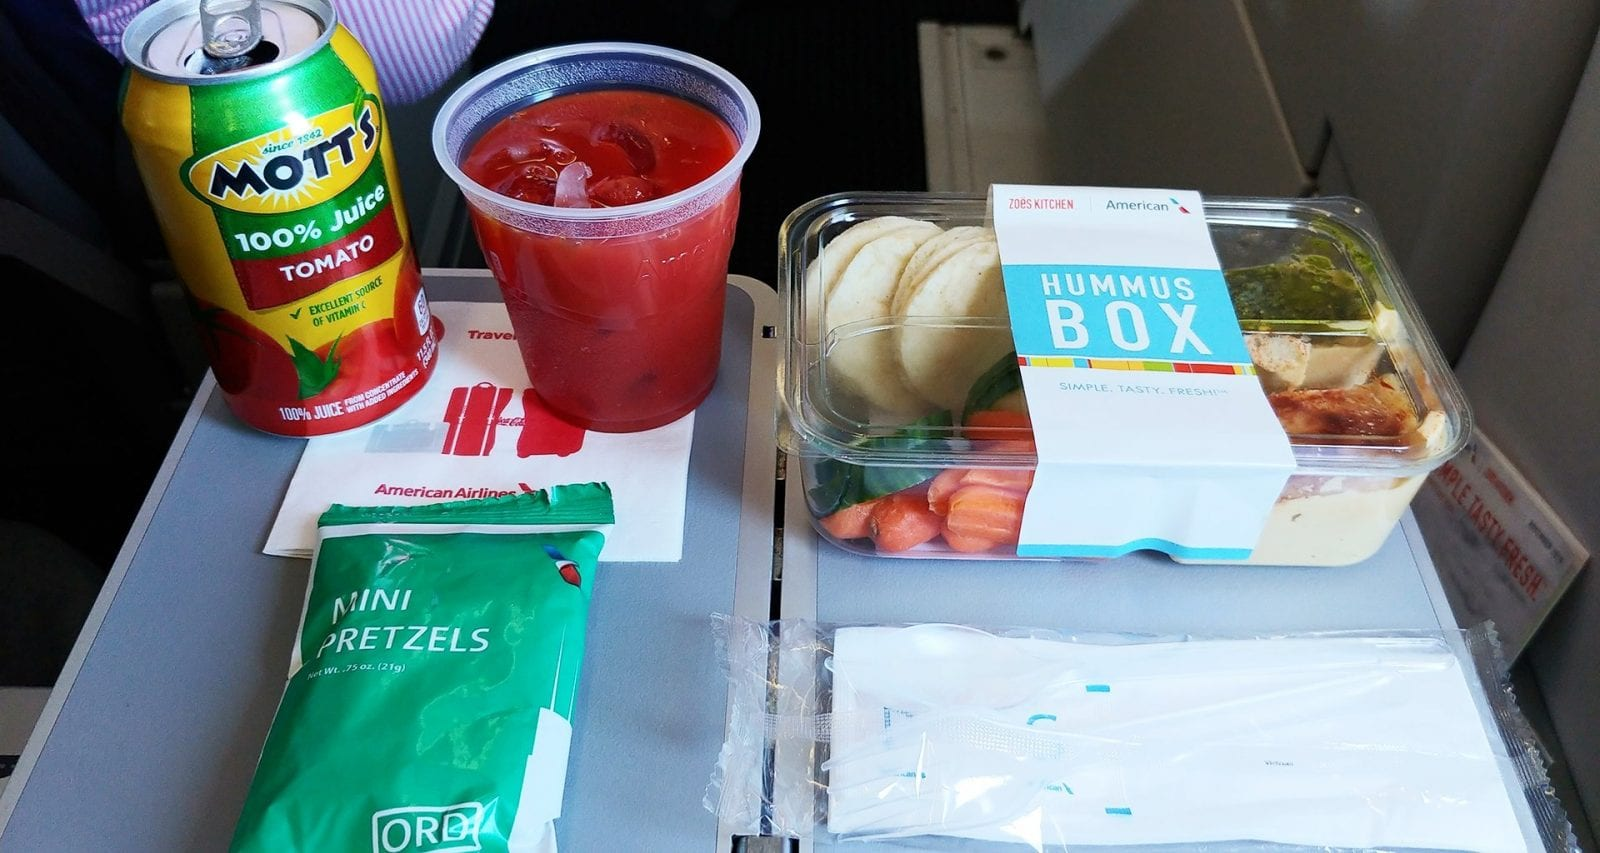 American Airlines hummus box meal